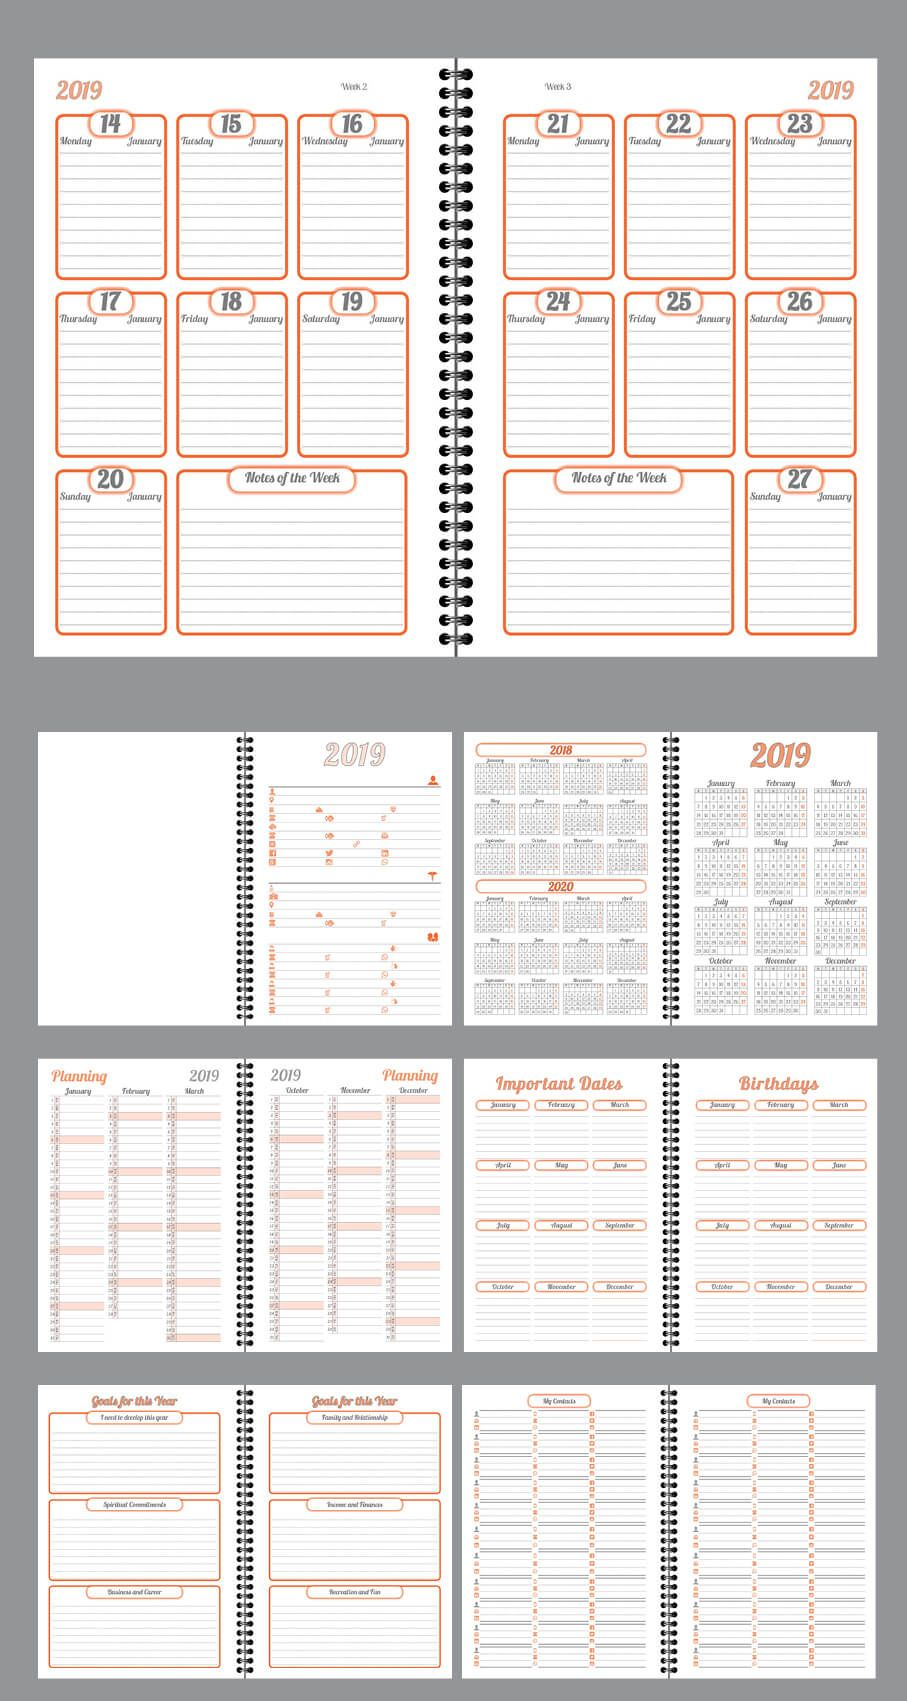 Daily Planner Agenda Indesign Template Fully Editable Model Atd76